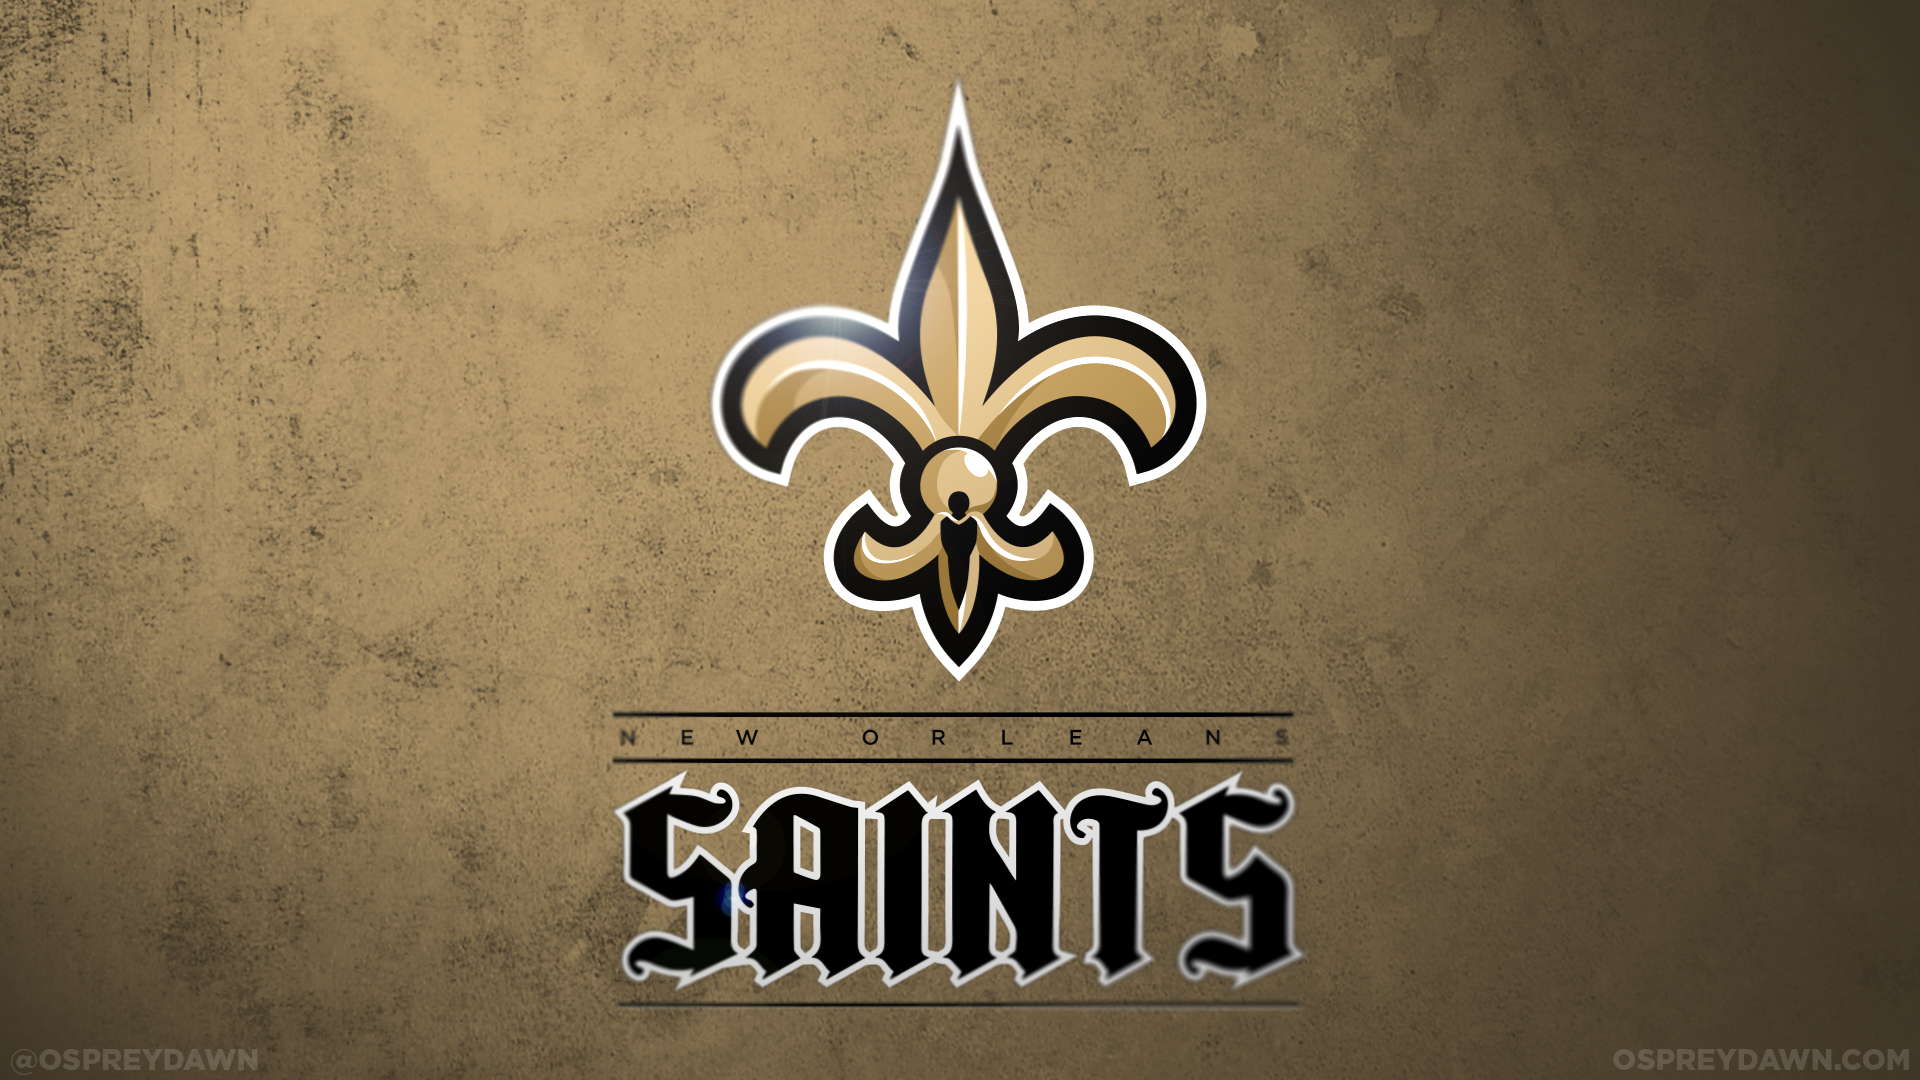 Draft in Review: New Orleans Saints